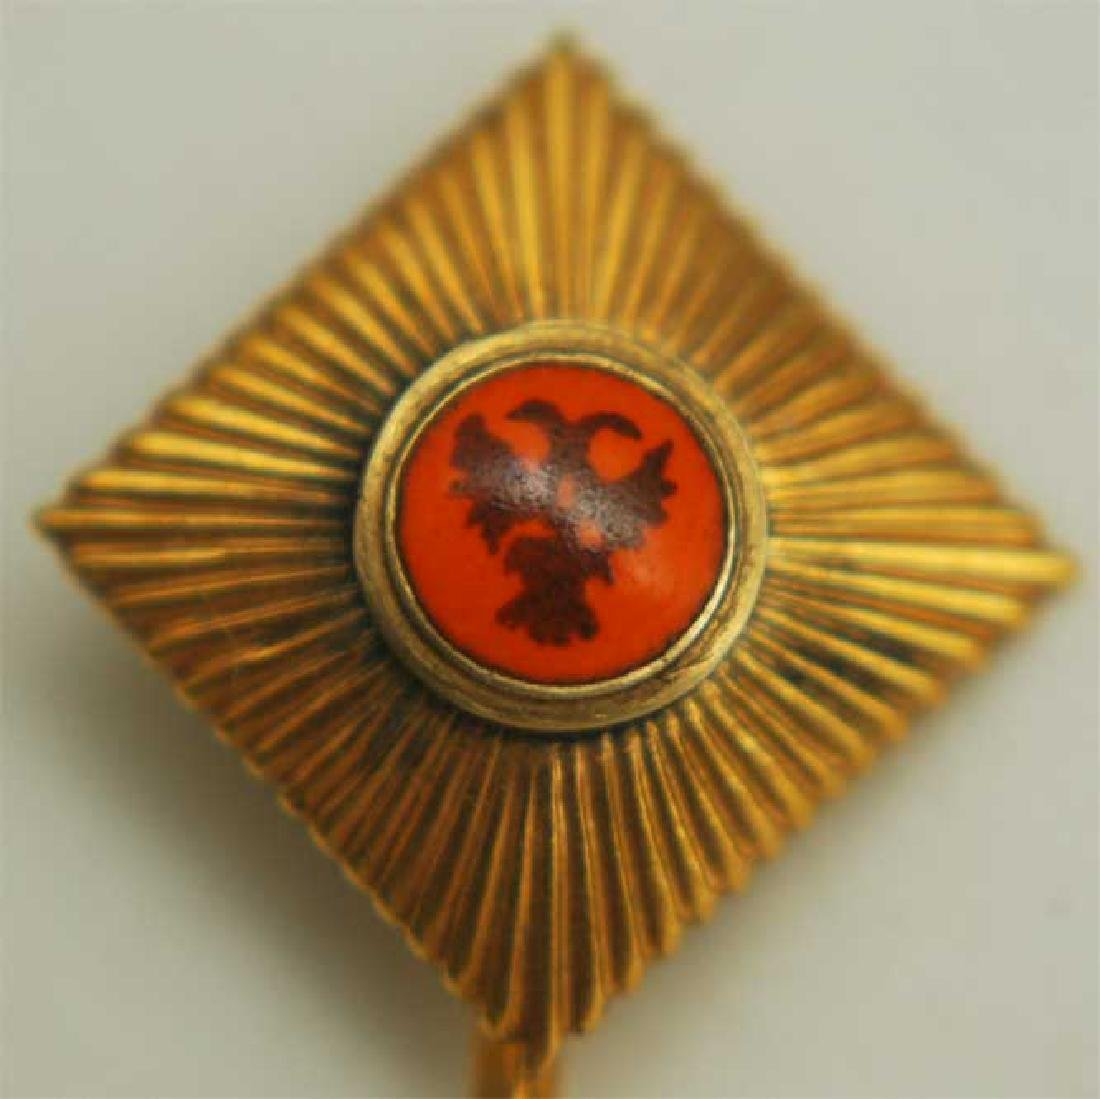 Russian Imperial Gold Order St. George f. Non Christian